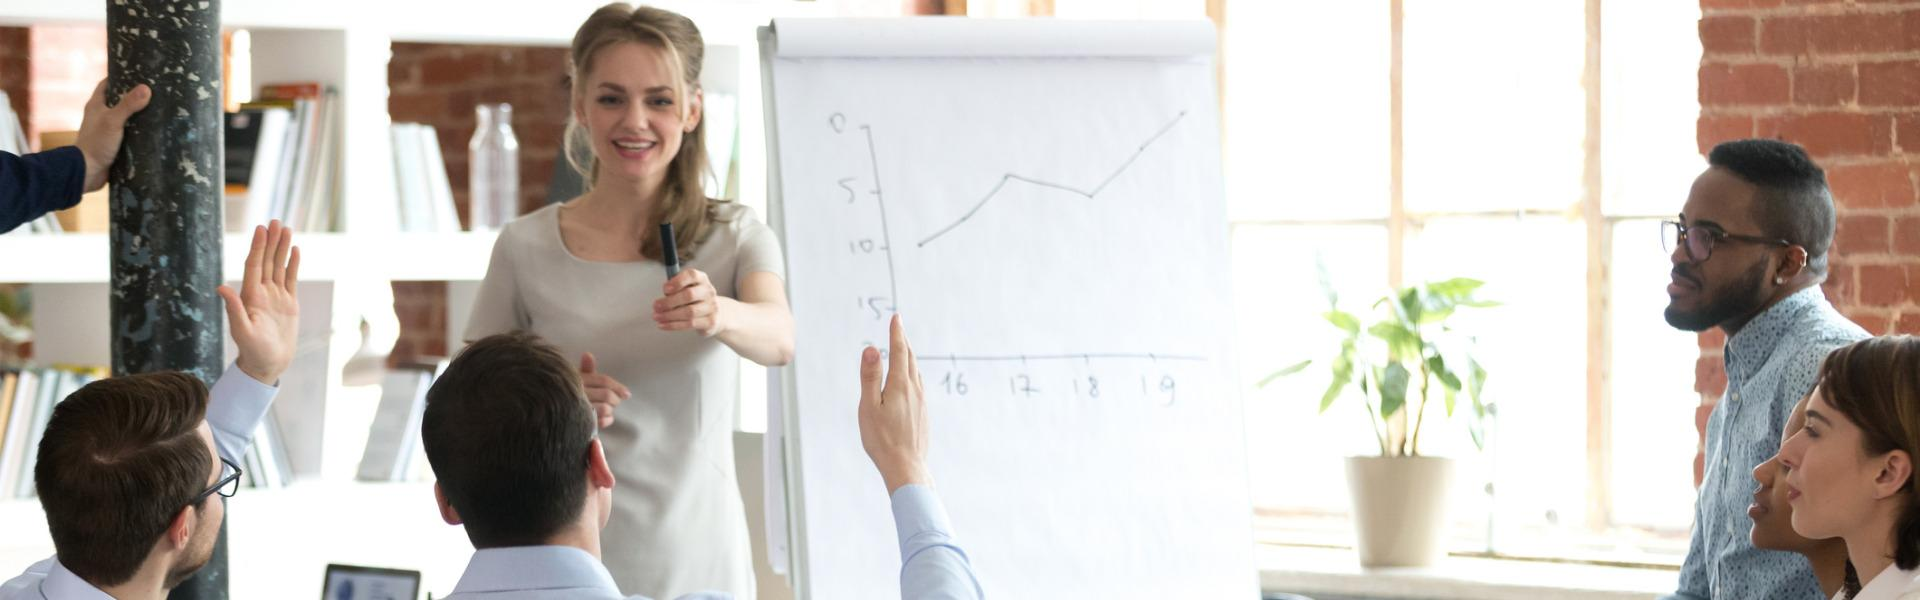 female mentor invite employee present idea on flipchart